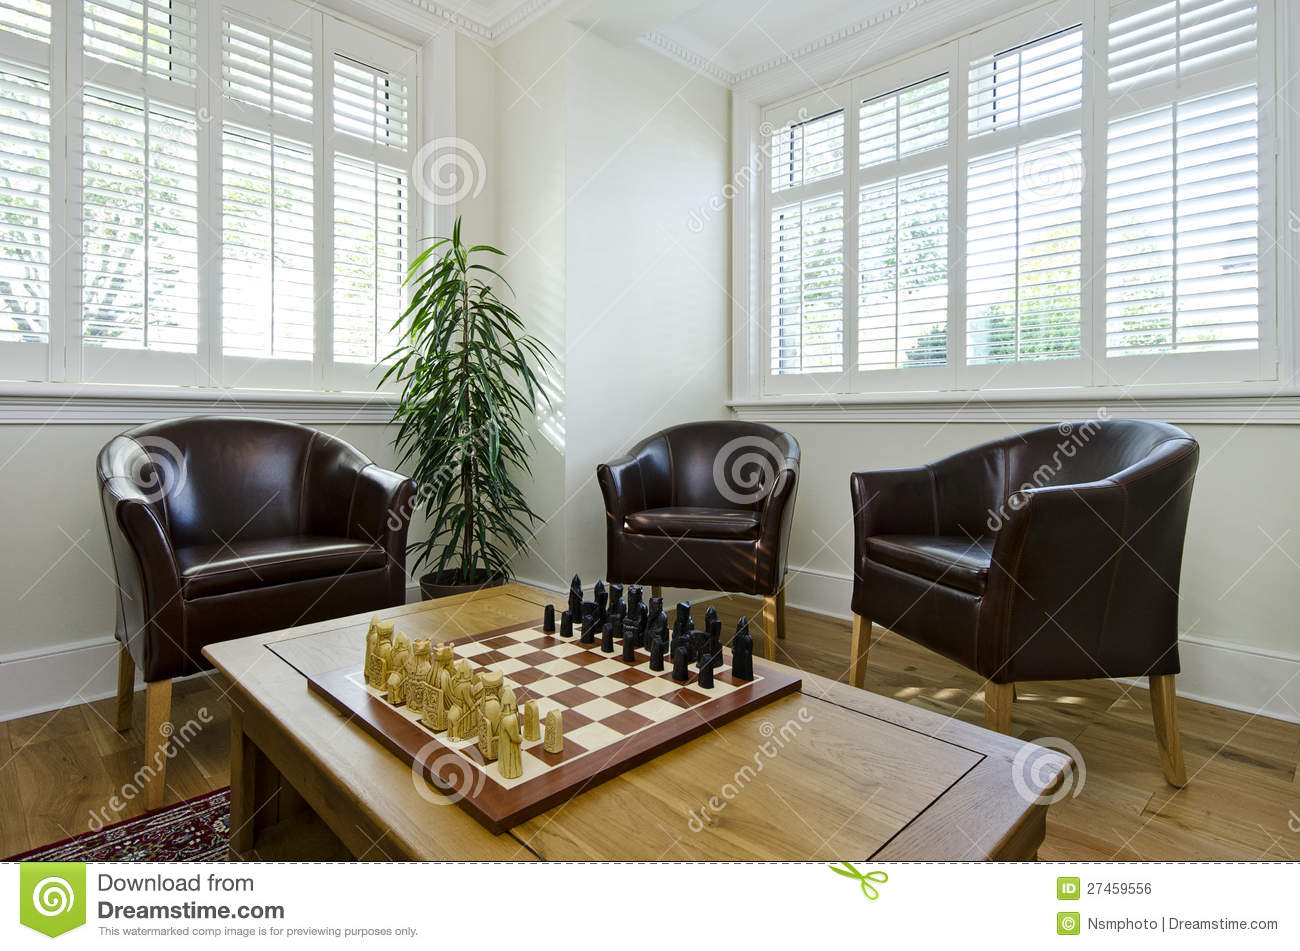 Comfortable Office Chair Study Room With Leather Armchairs And Chess Board Stock